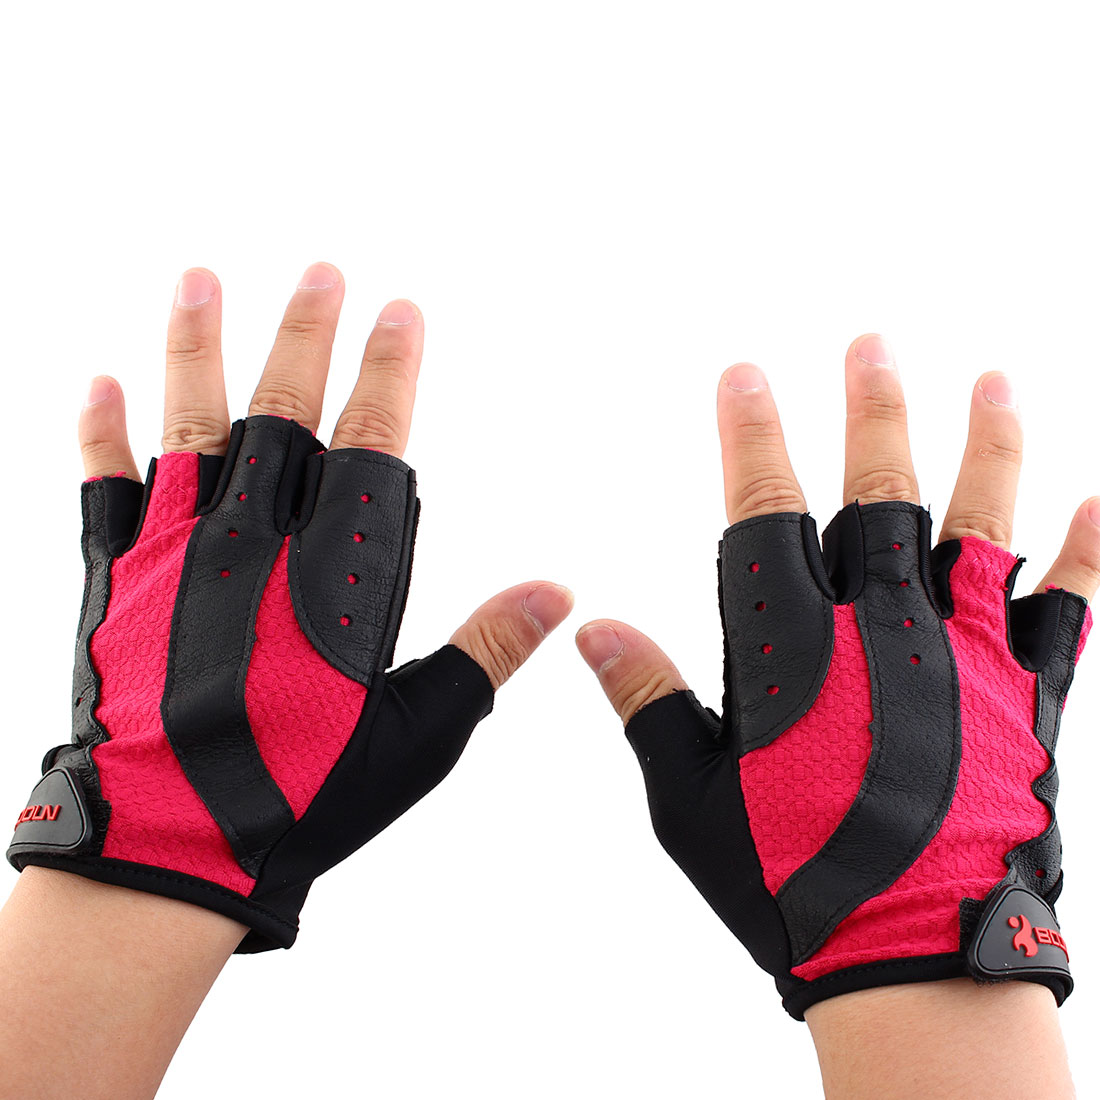 Boodun Authorized Outdoor Cycling Gym Exercise Cross Training Weight Lifting Non-slip Half Finger Gloves Size M Pair